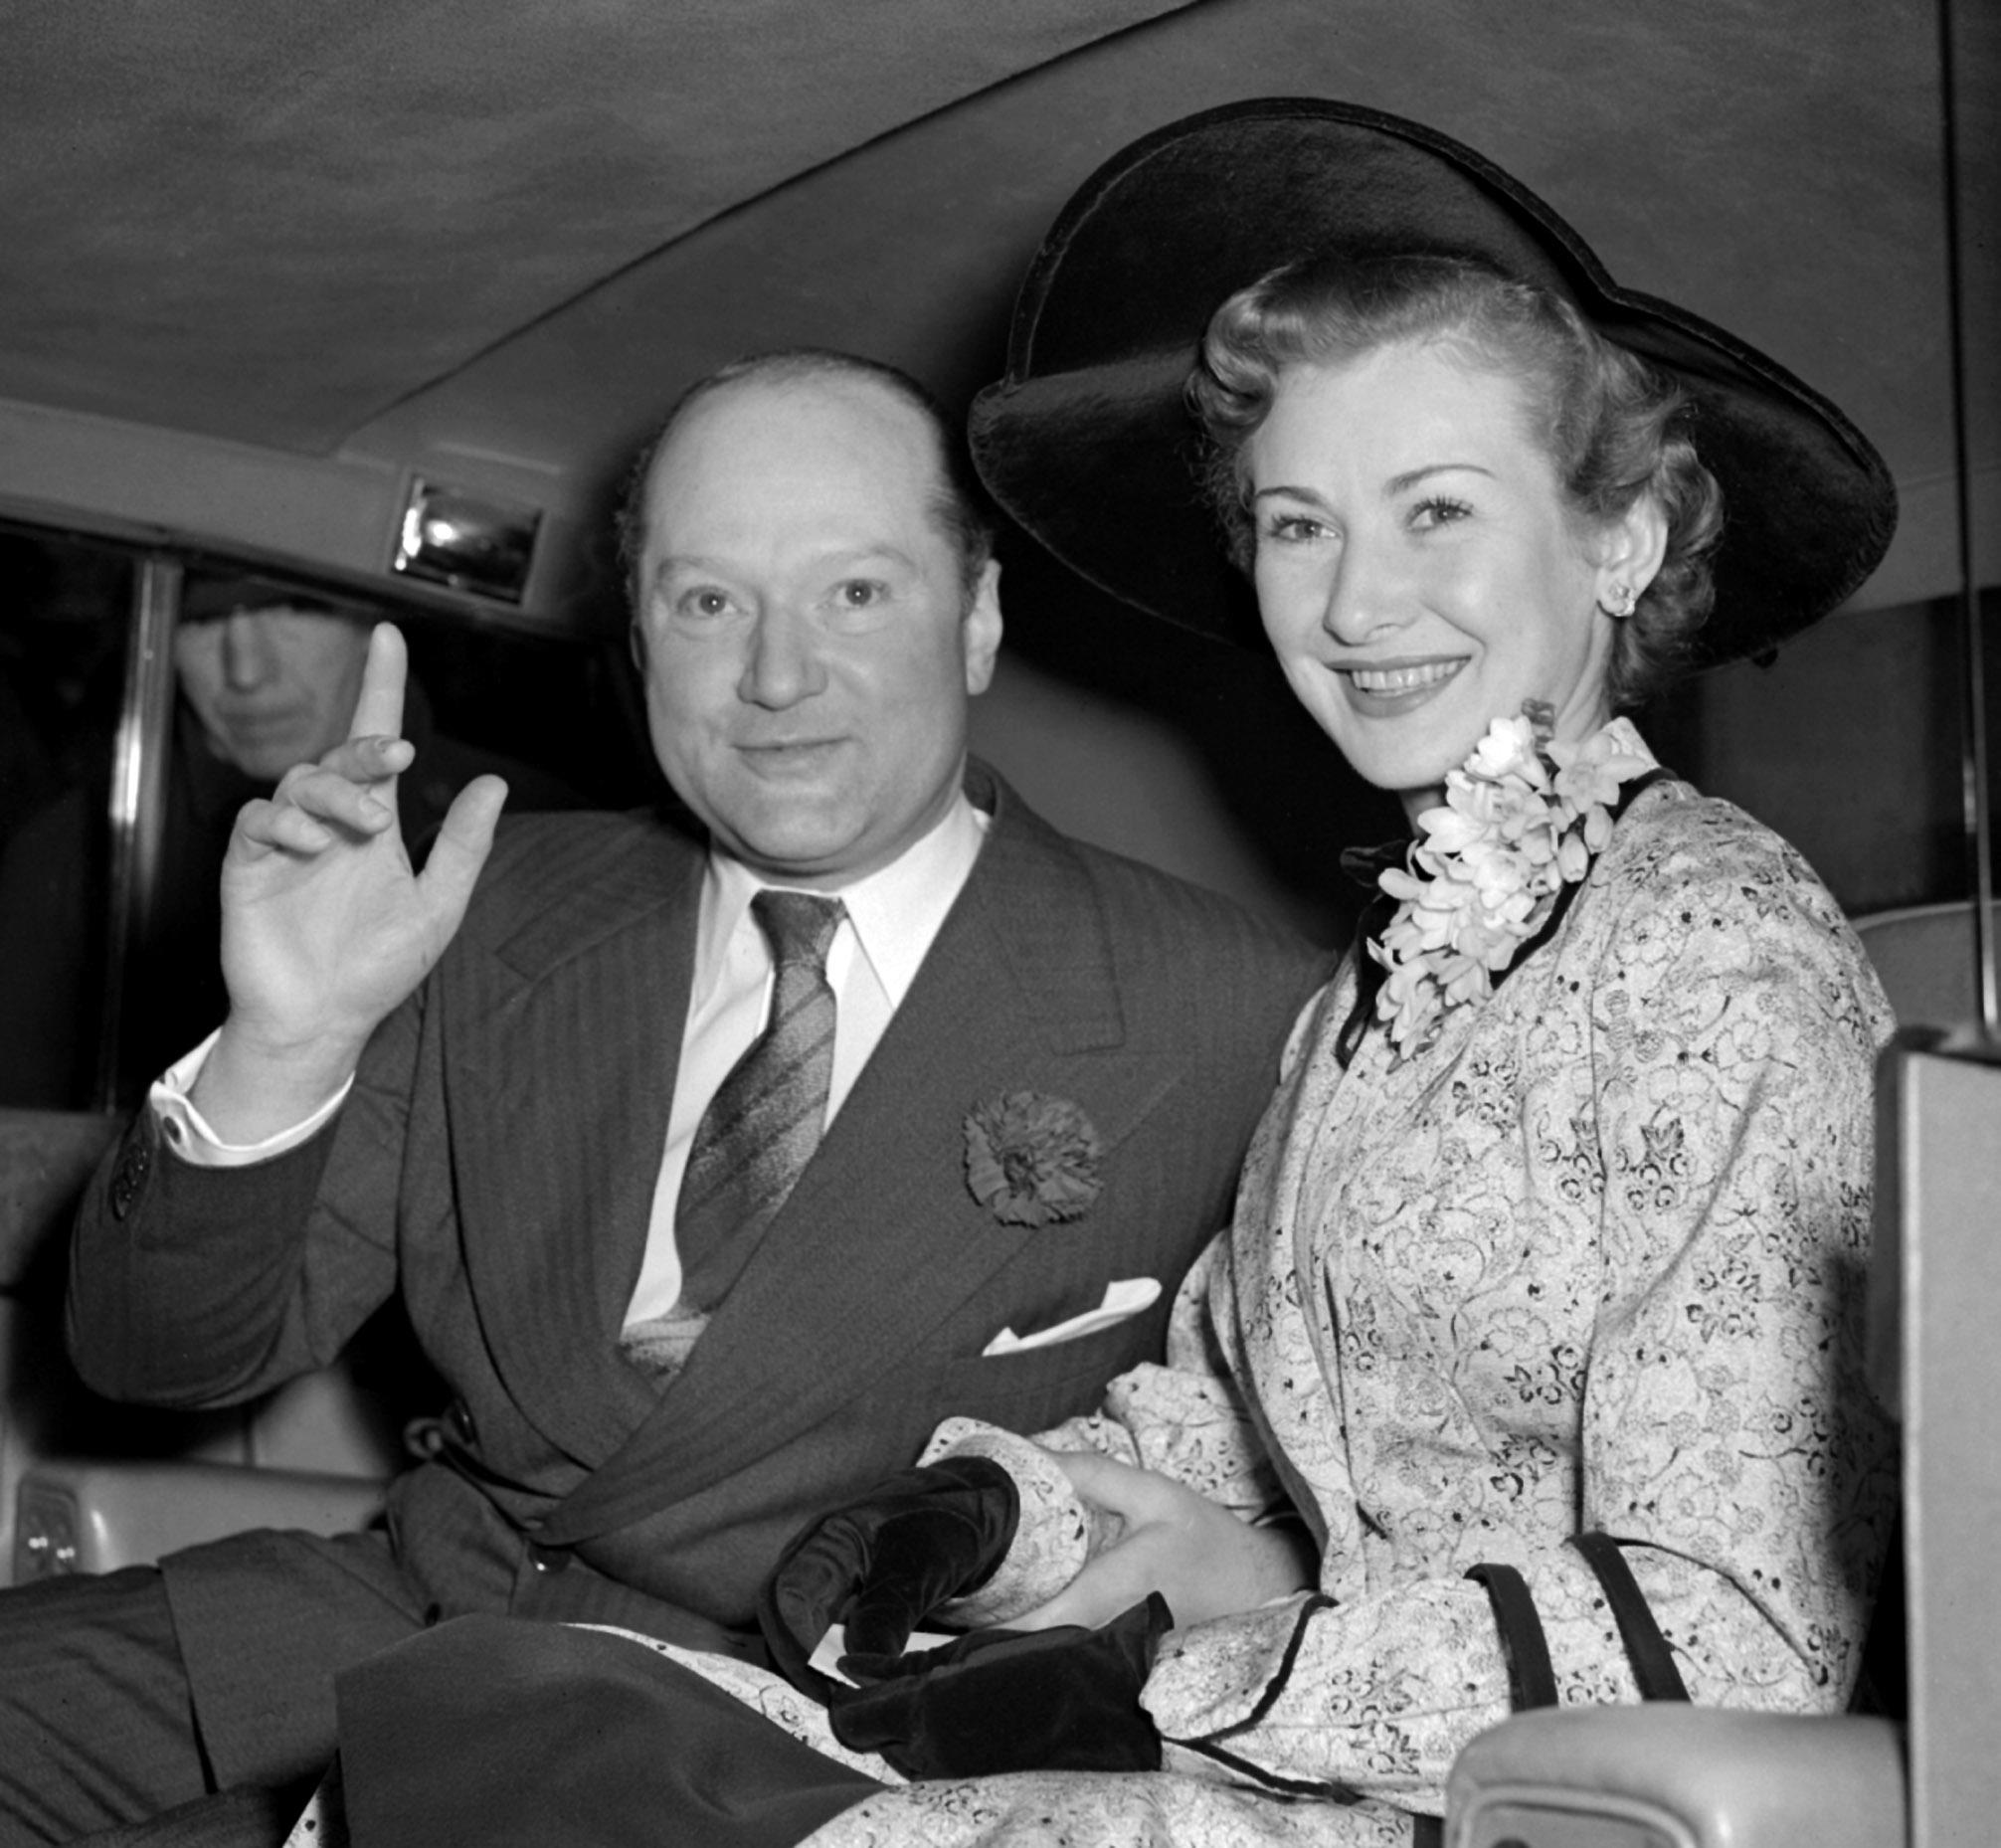 "Mr John Davis, president of the Rank Organisation and film star/singer Dinah Sheridan, after their wedding at Caxton Hall, London on 3 March 1954. John Davis, who proposed to her on the one condition that she give up acting. She decided, with no remarkable work offers on the cards, to accept his condition. ""I got a divorce eleven years later [in 1965] on the grounds of cruelty, which is still not easy in England. But after fifteen minutes, the judge said he 'didn't want to hear any more of the disgraceful details.'"